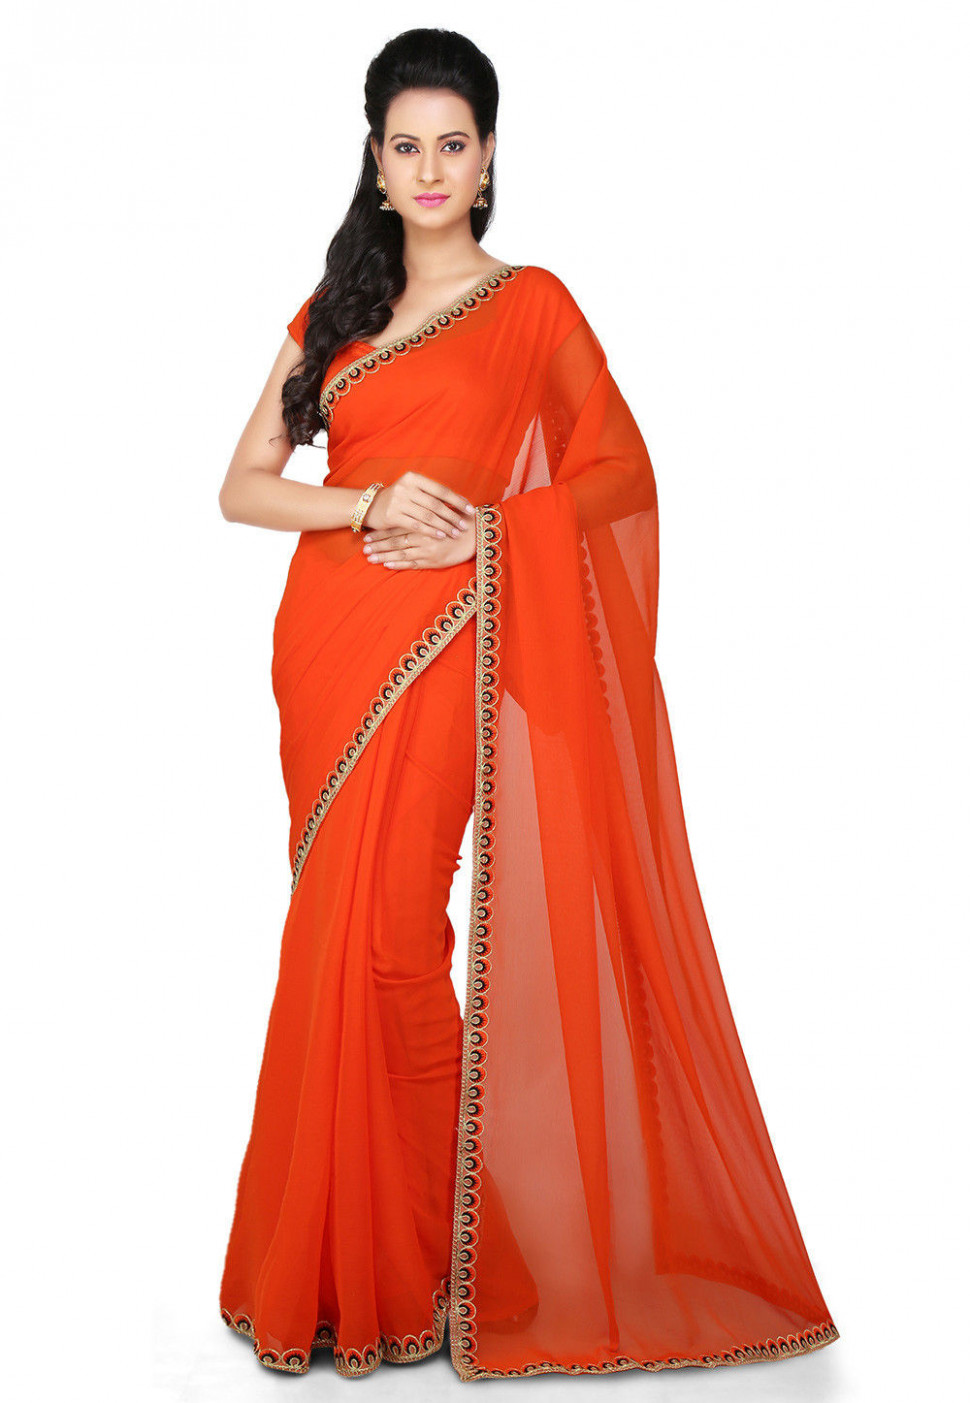 Embroidered Border Chiffon Saree in Orange : SEH1078